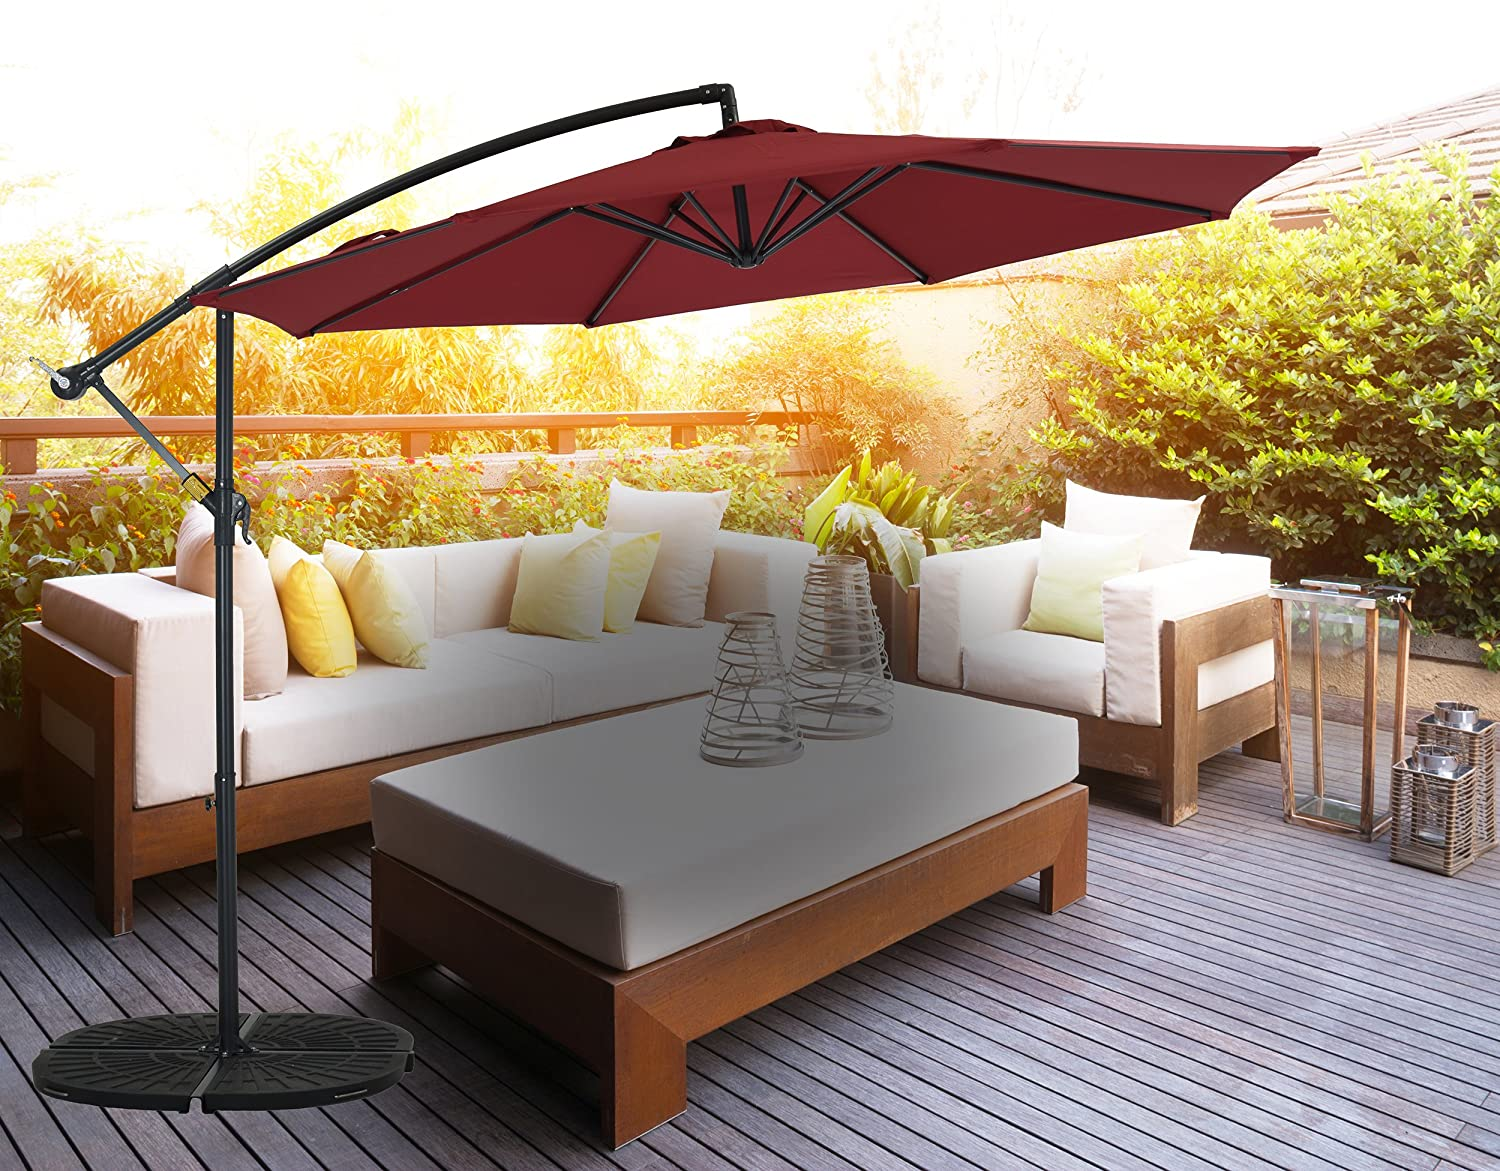 The Best Patio Umbrellas For Your Garden Or Backyard: Reviews & Buying Guide 6